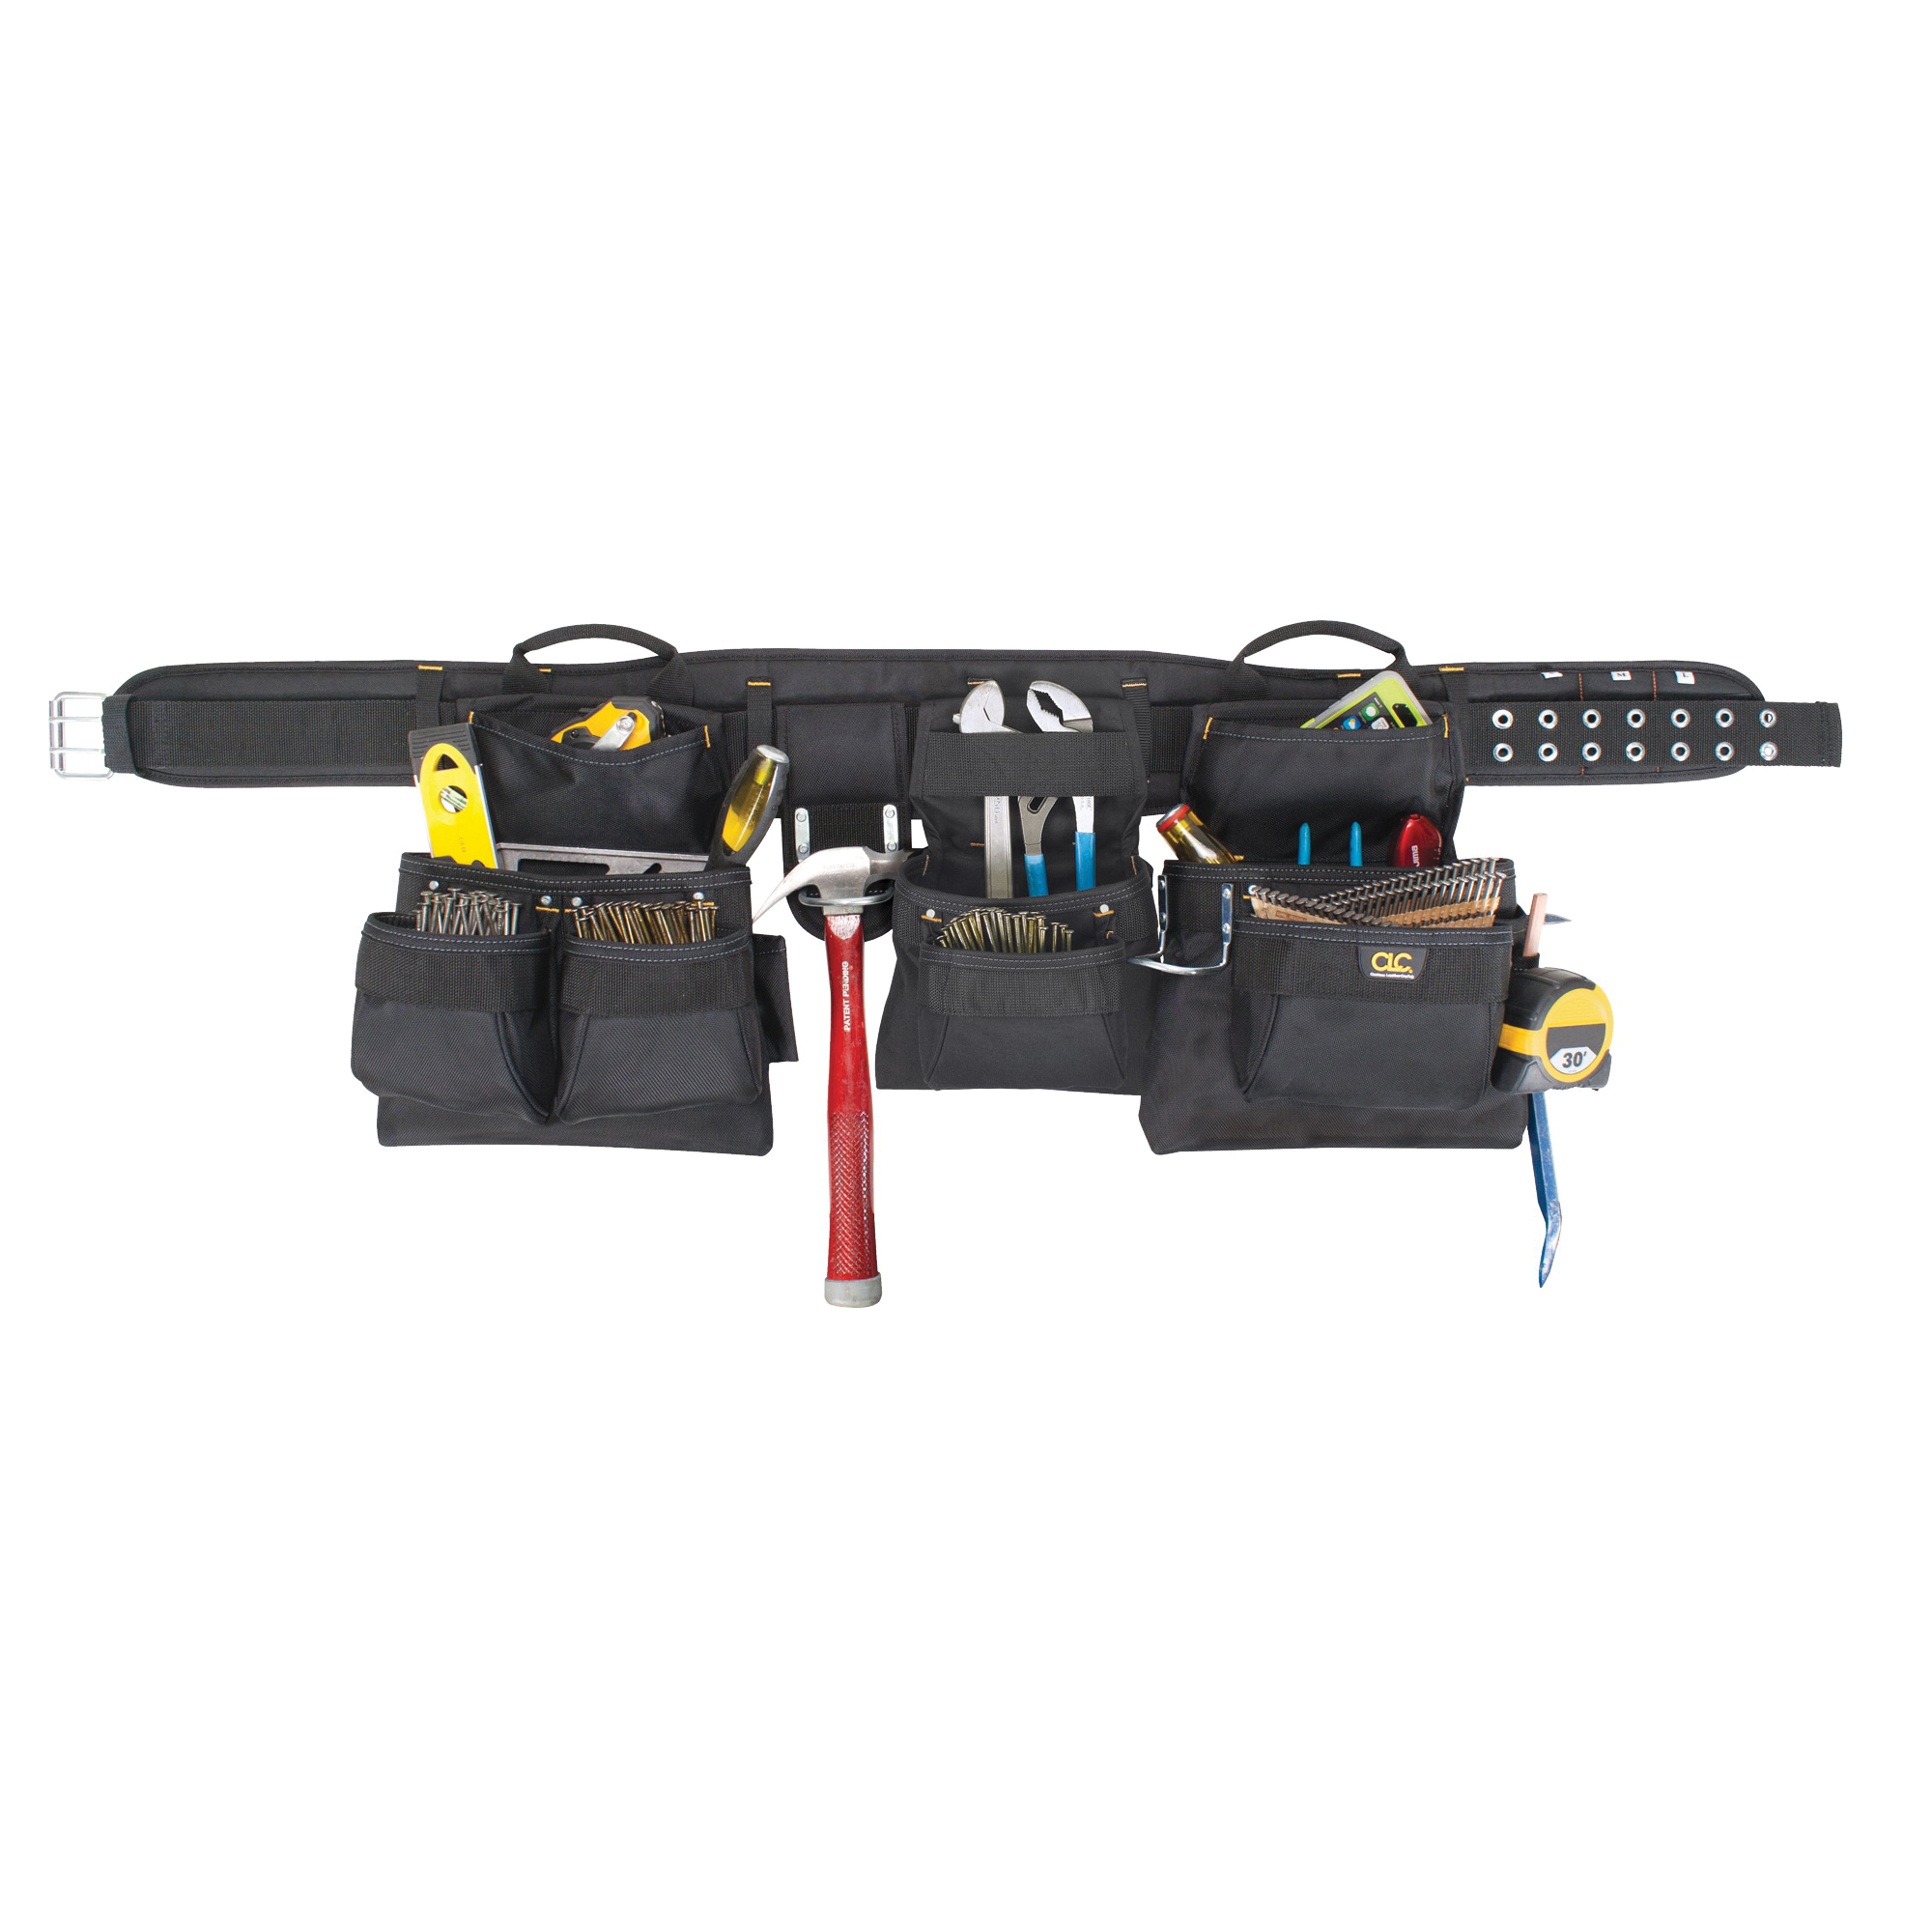 Picture of CLC Tool Works 5605 Tool Belt, 29 to 46 in Waist, Polyester, Black, 18 -Pocket